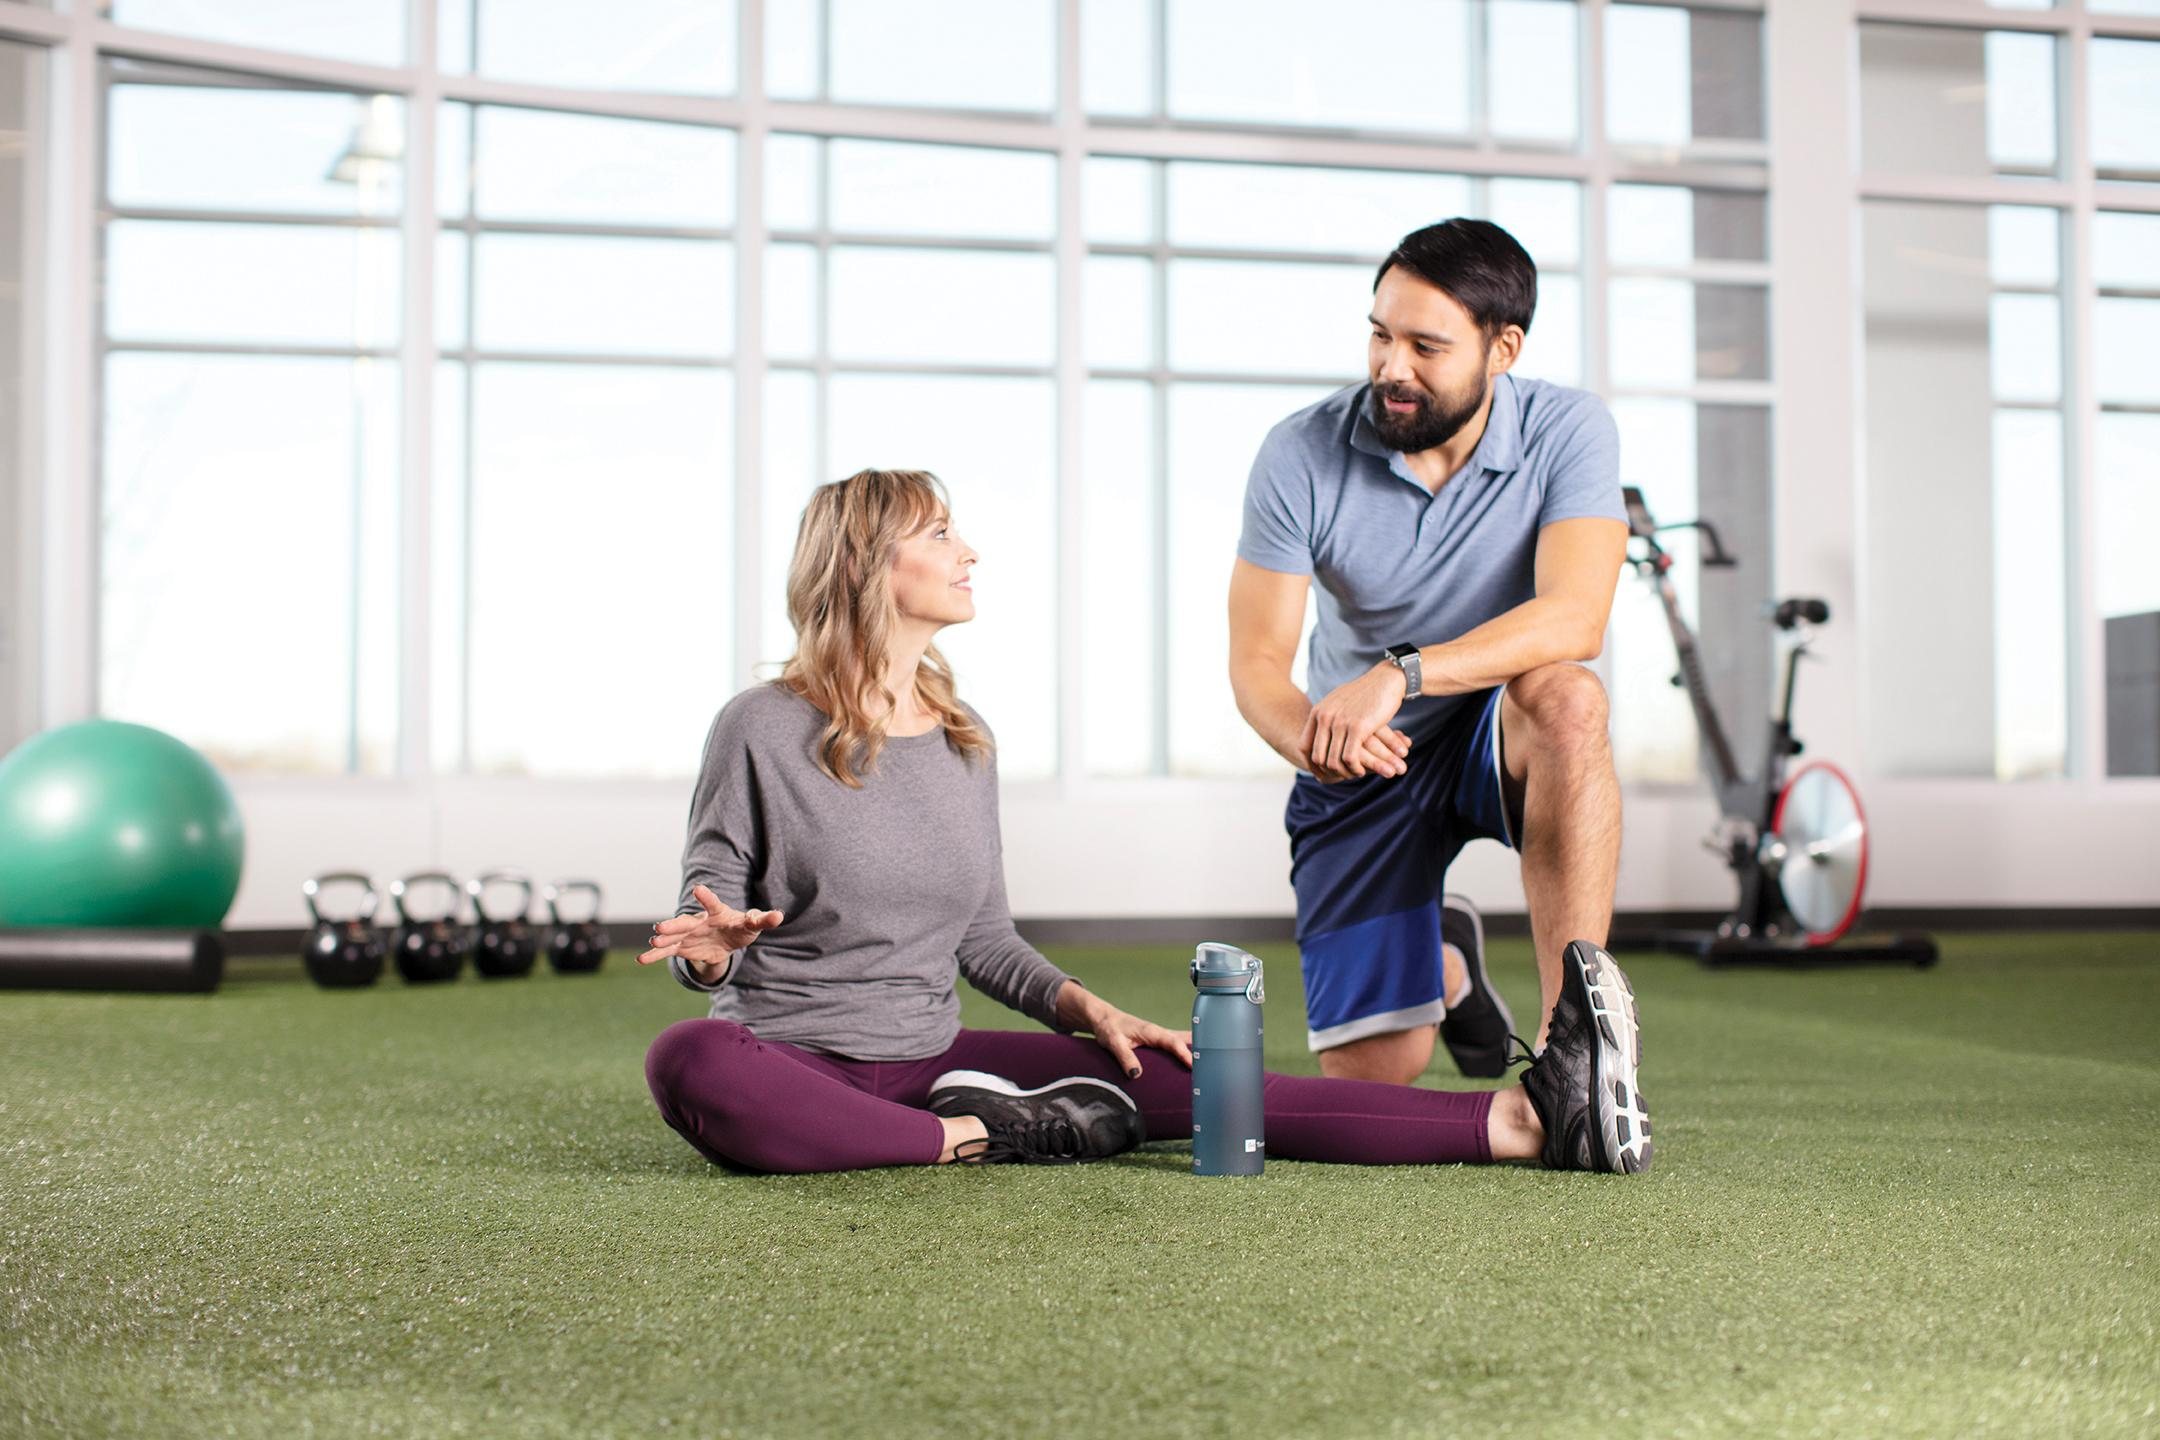 People smiling in workout clothes on some sort of astroturf?